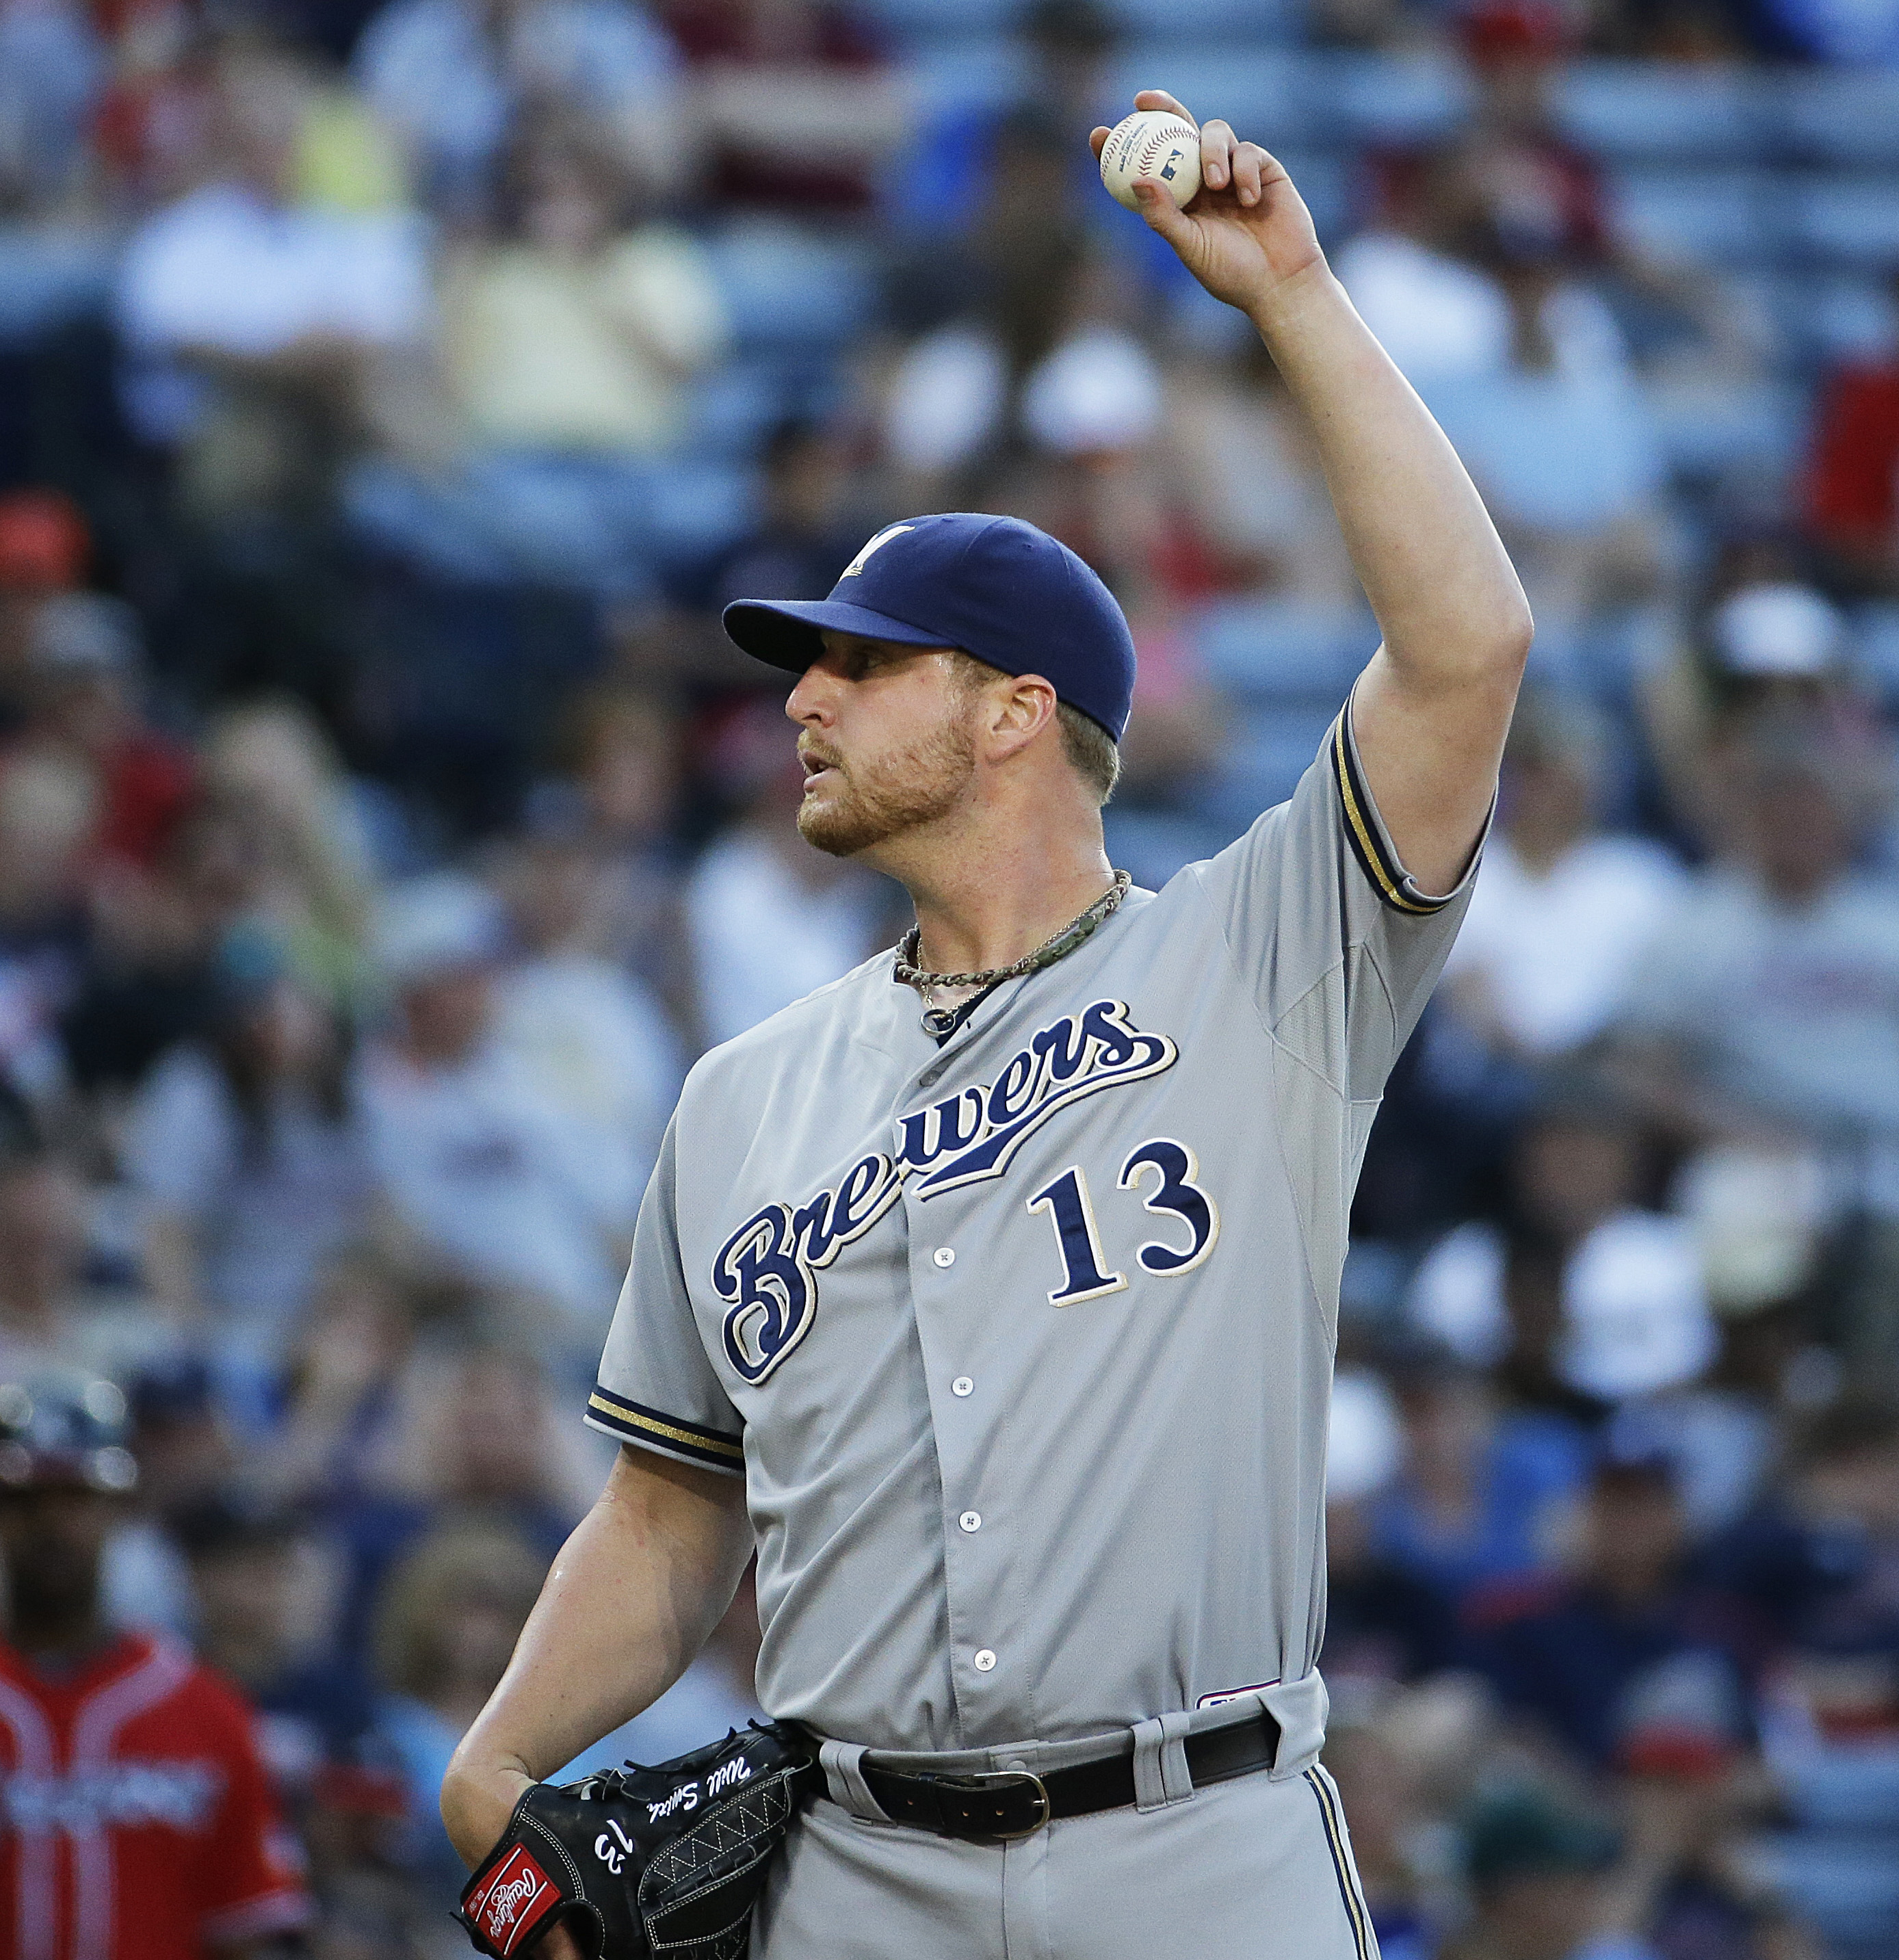 Milwaukee Brewers relief pitcher Will Smith prepares to throw in the eighth inning of a baseball game against the Atlanta Braves Saturday, May 23, 2015, in Atlanta. (AP Photo/David Goldman)